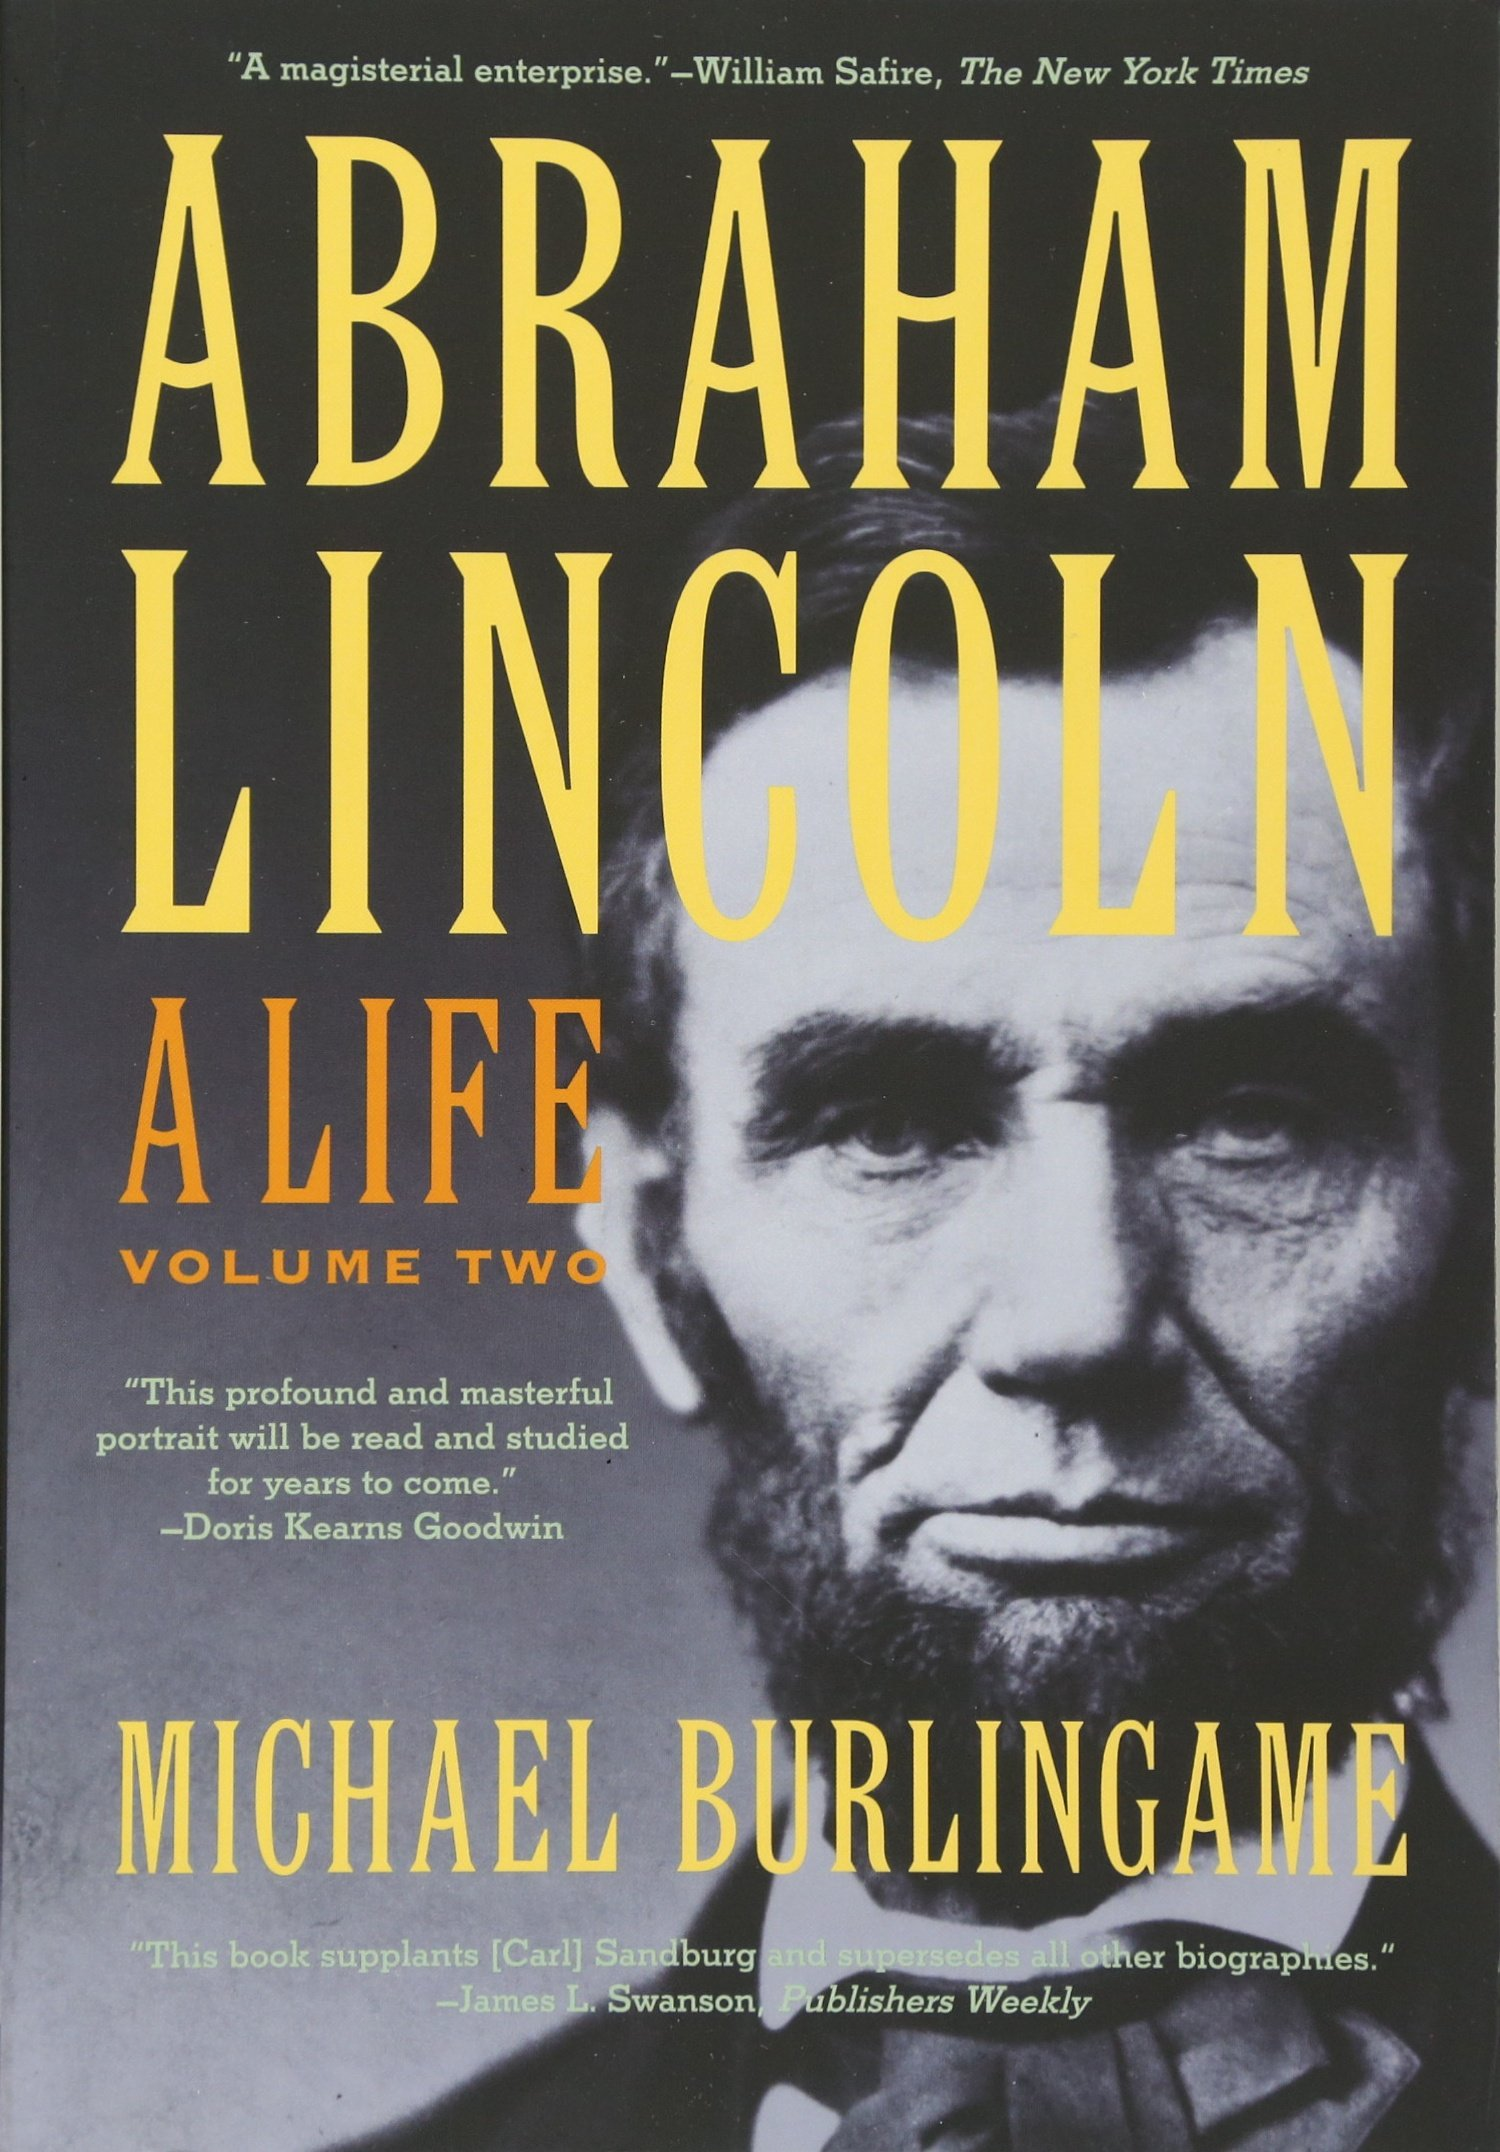 Abraham Lincoln: A Life (Volume 2)